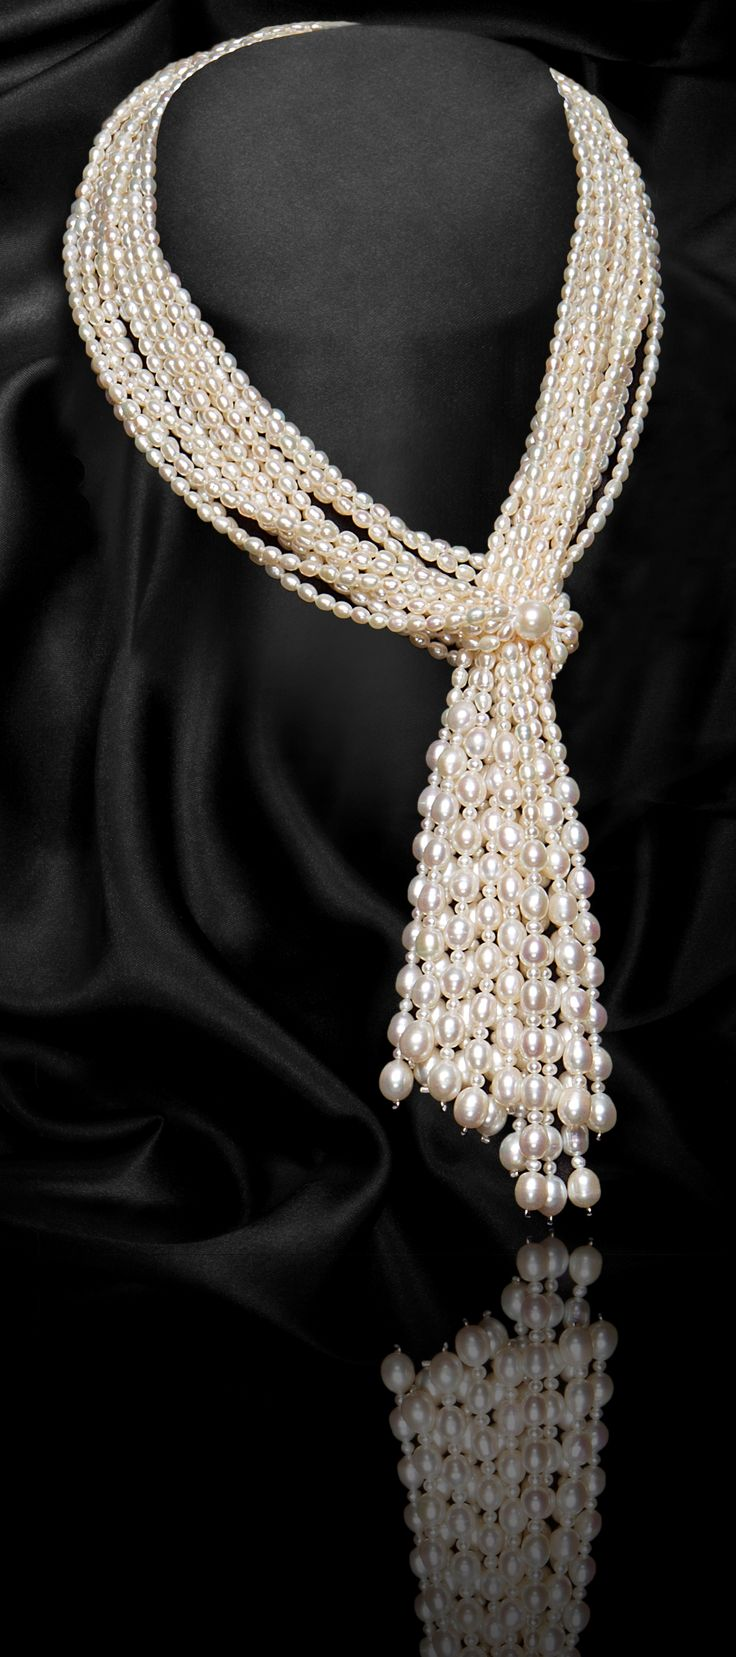 WHITE MULTI-STRAND SCARF SHAPE FRESHWATER PEARL NECKLACE 1st Year Anniversary Offer 50% OFF! Till 30th April £320 https://www.glamconfidential.com/p/multi-strand-scarf-shape-freshwater-pearls-necklace-white--gcfp1007w/107.html#1